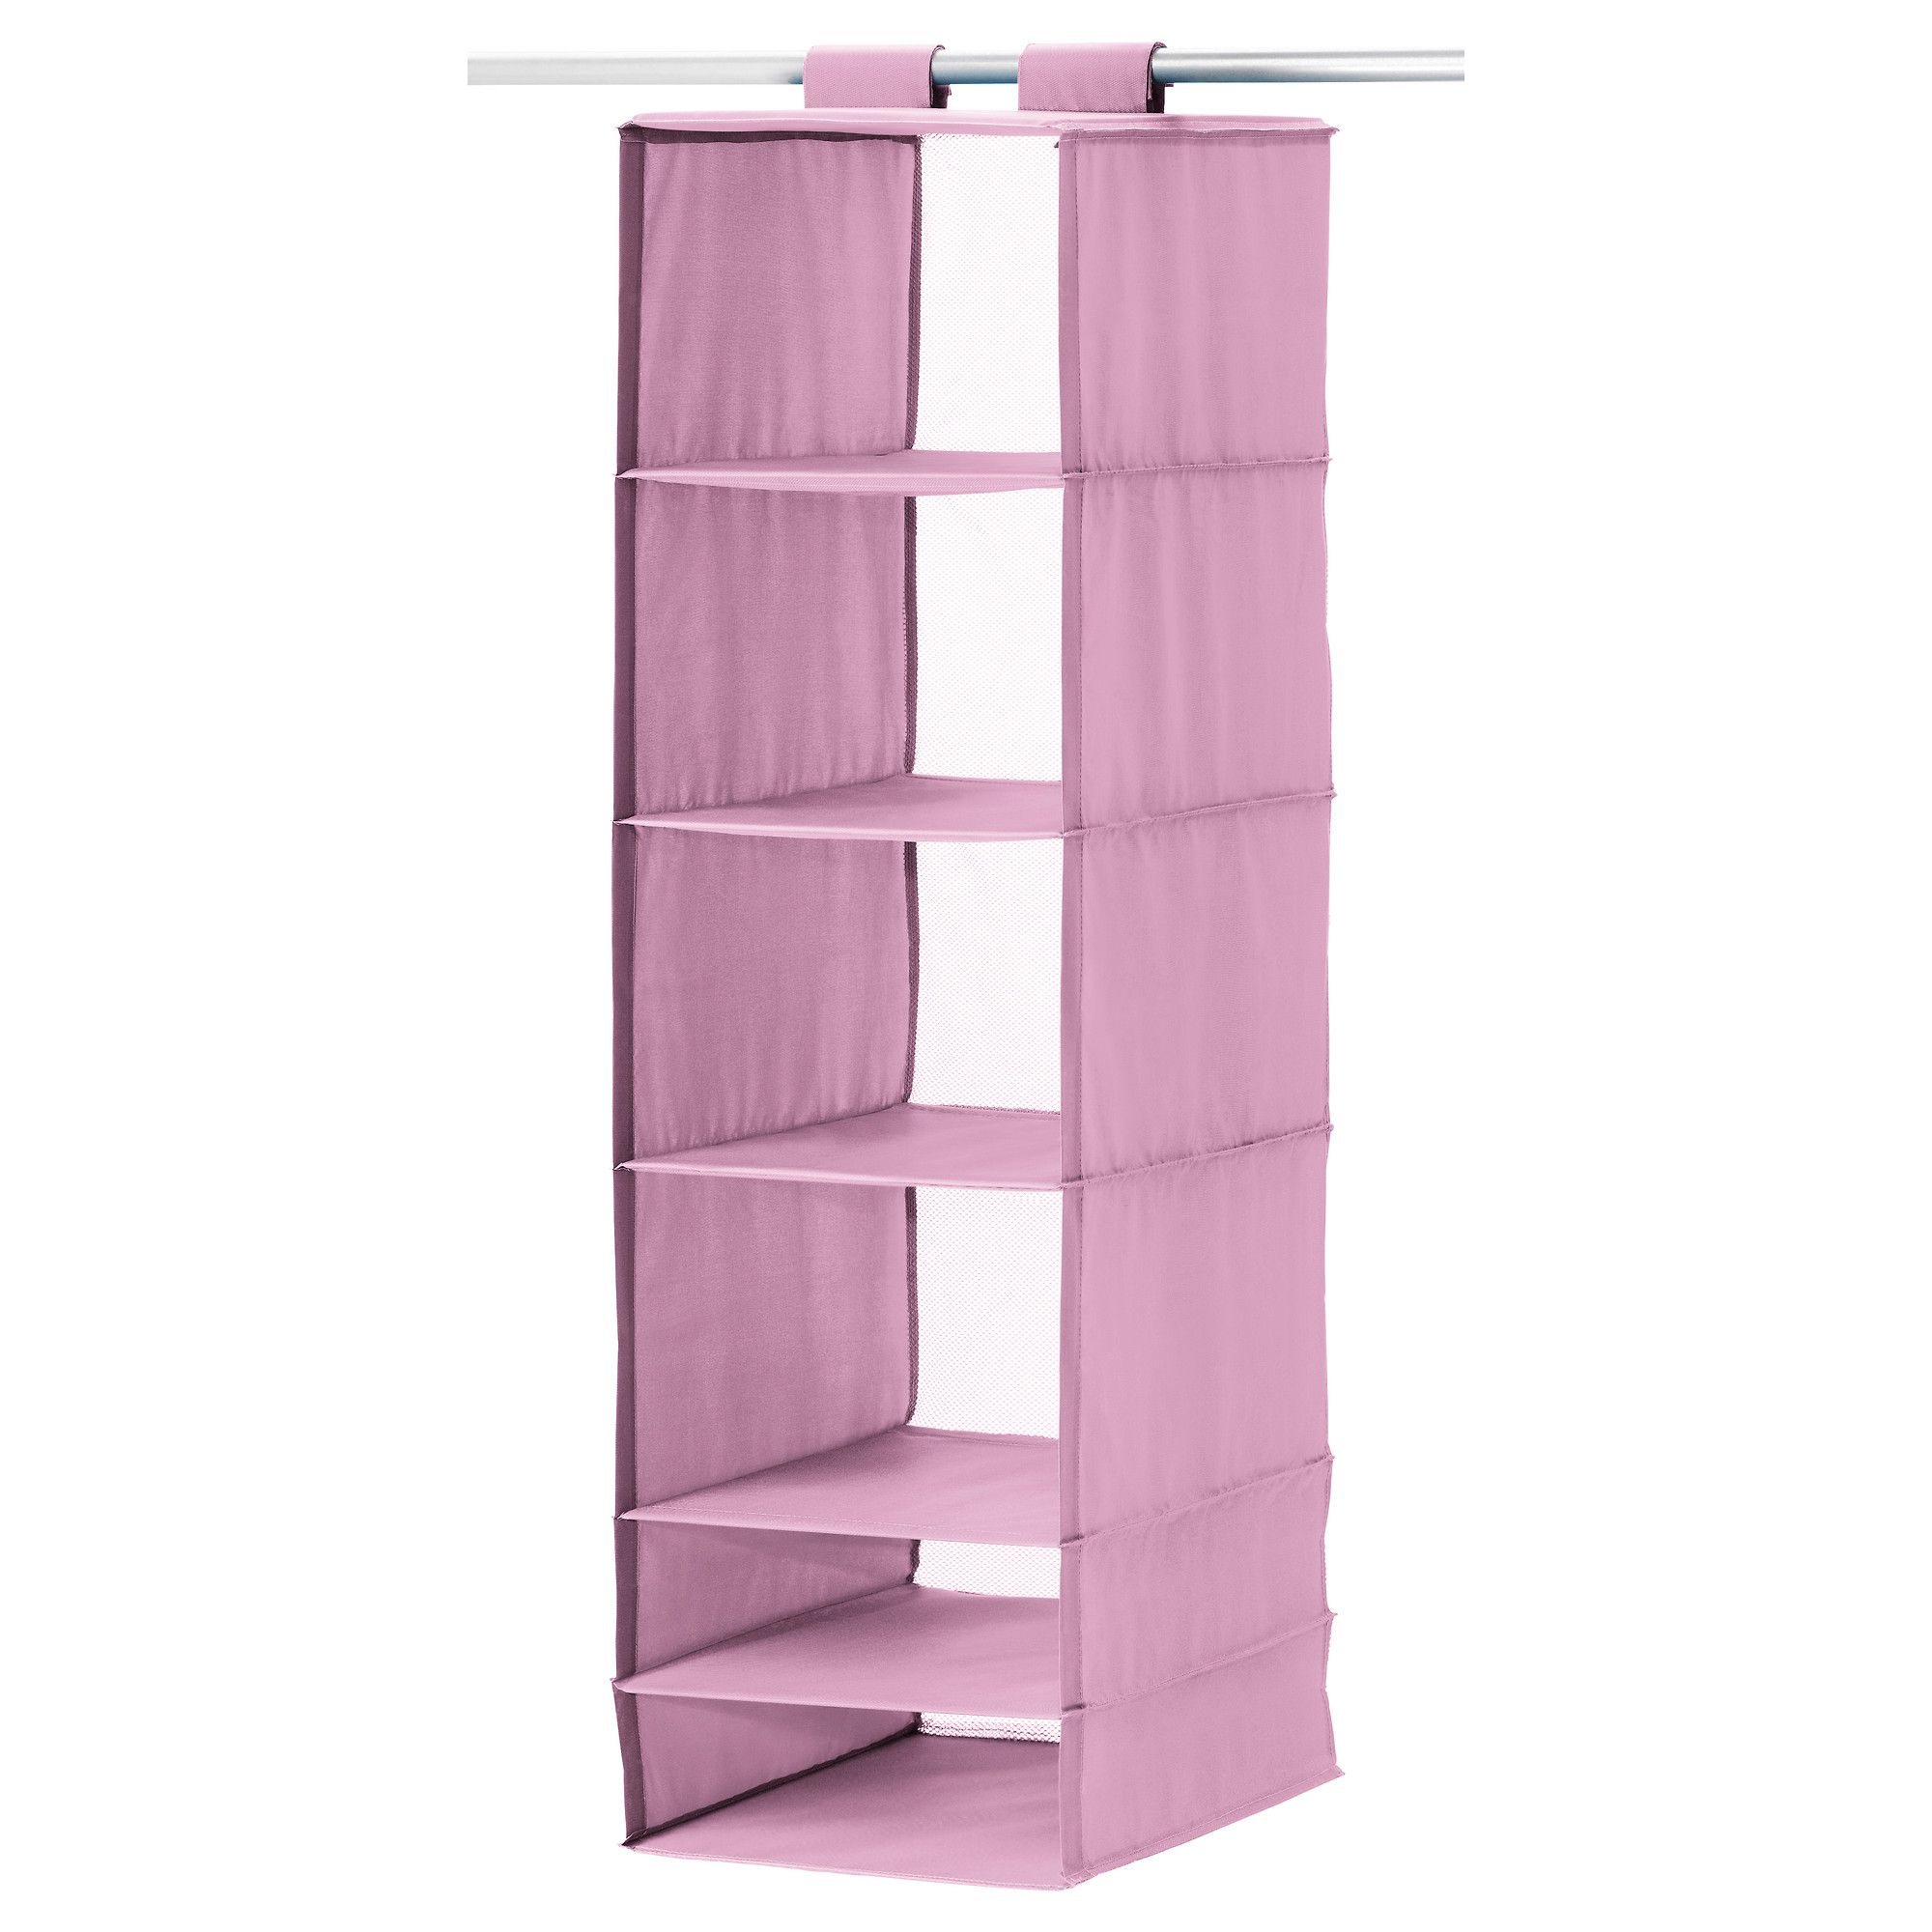 SKUBB Organizer with 6 partments pink IKEA